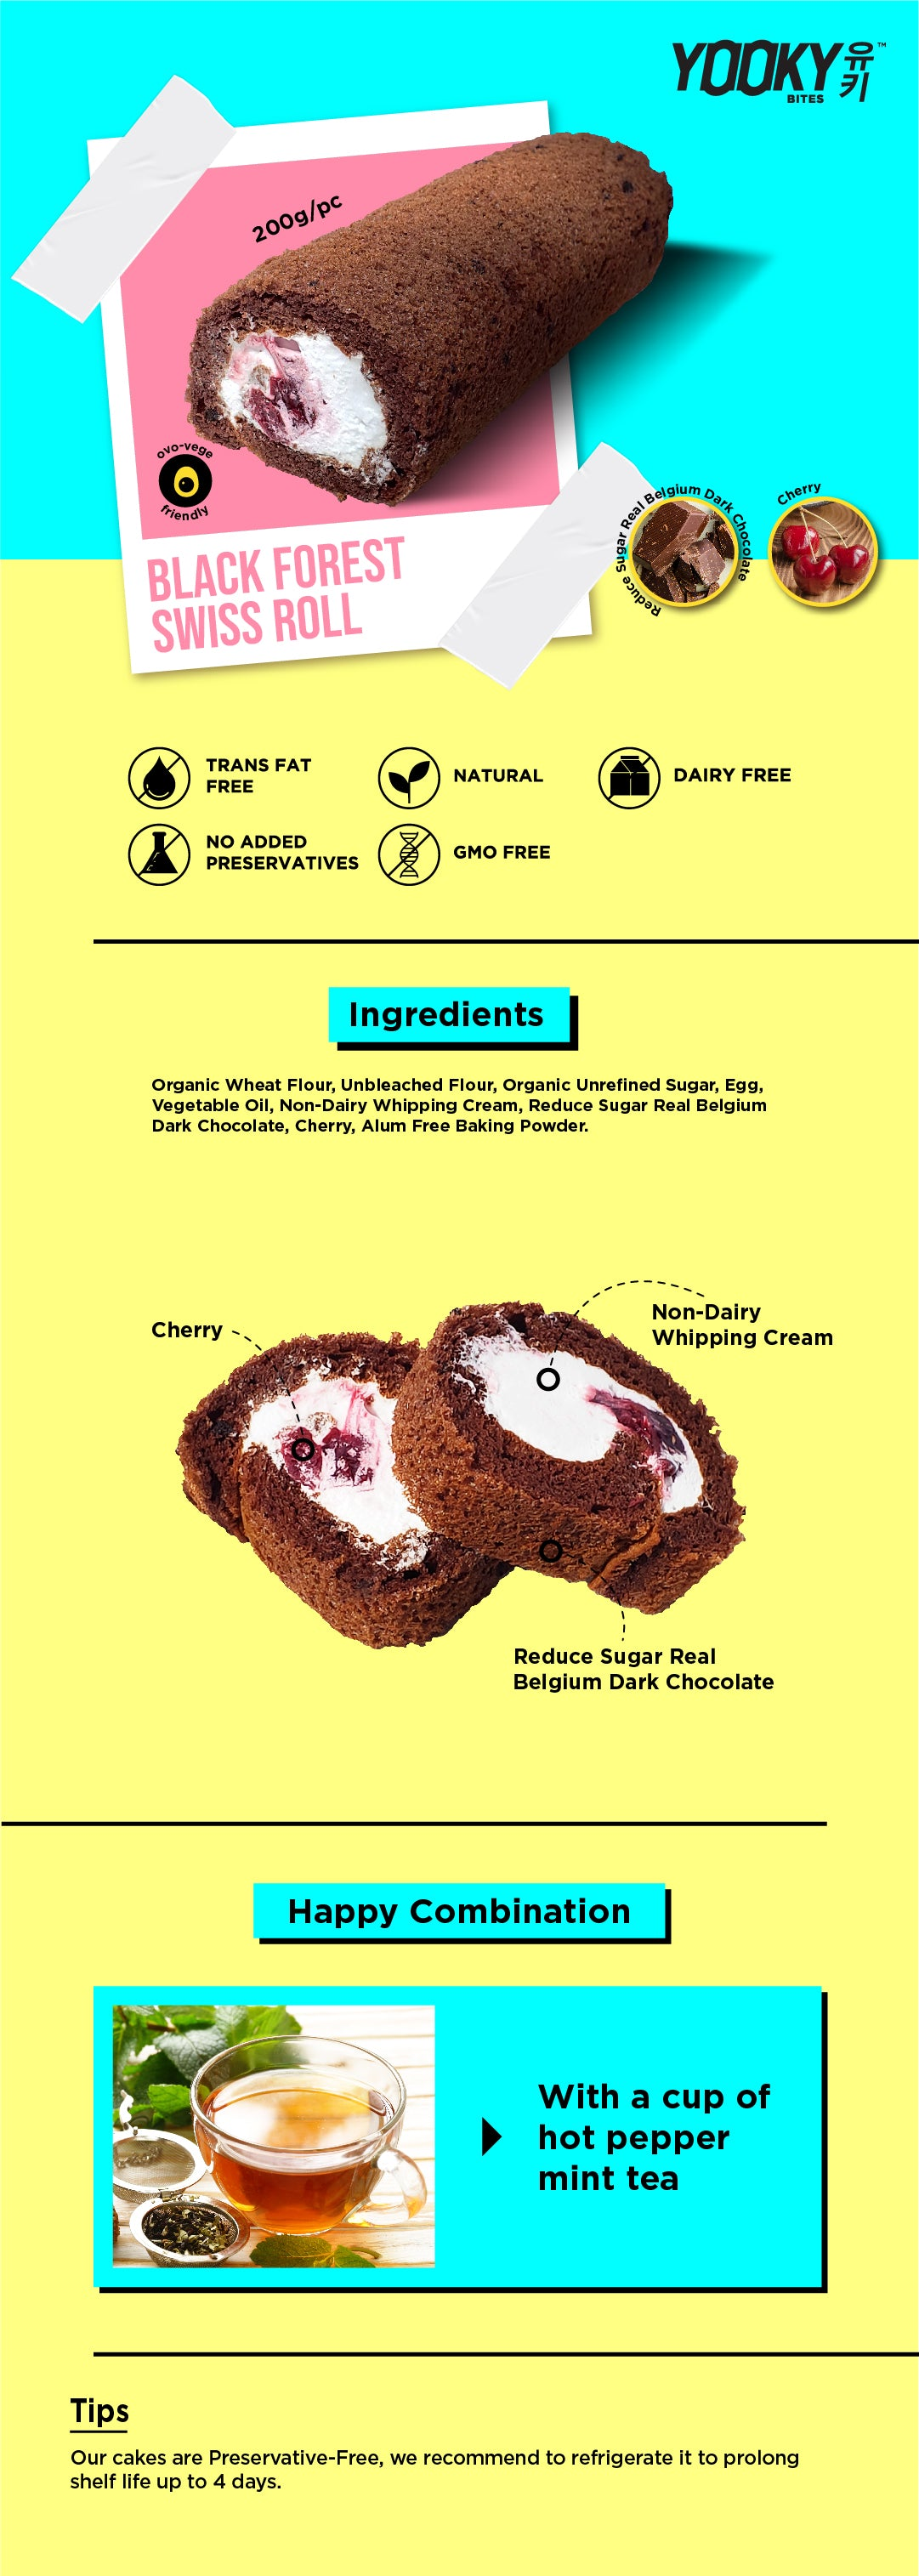 Black Forest Swiss Roll Product Description